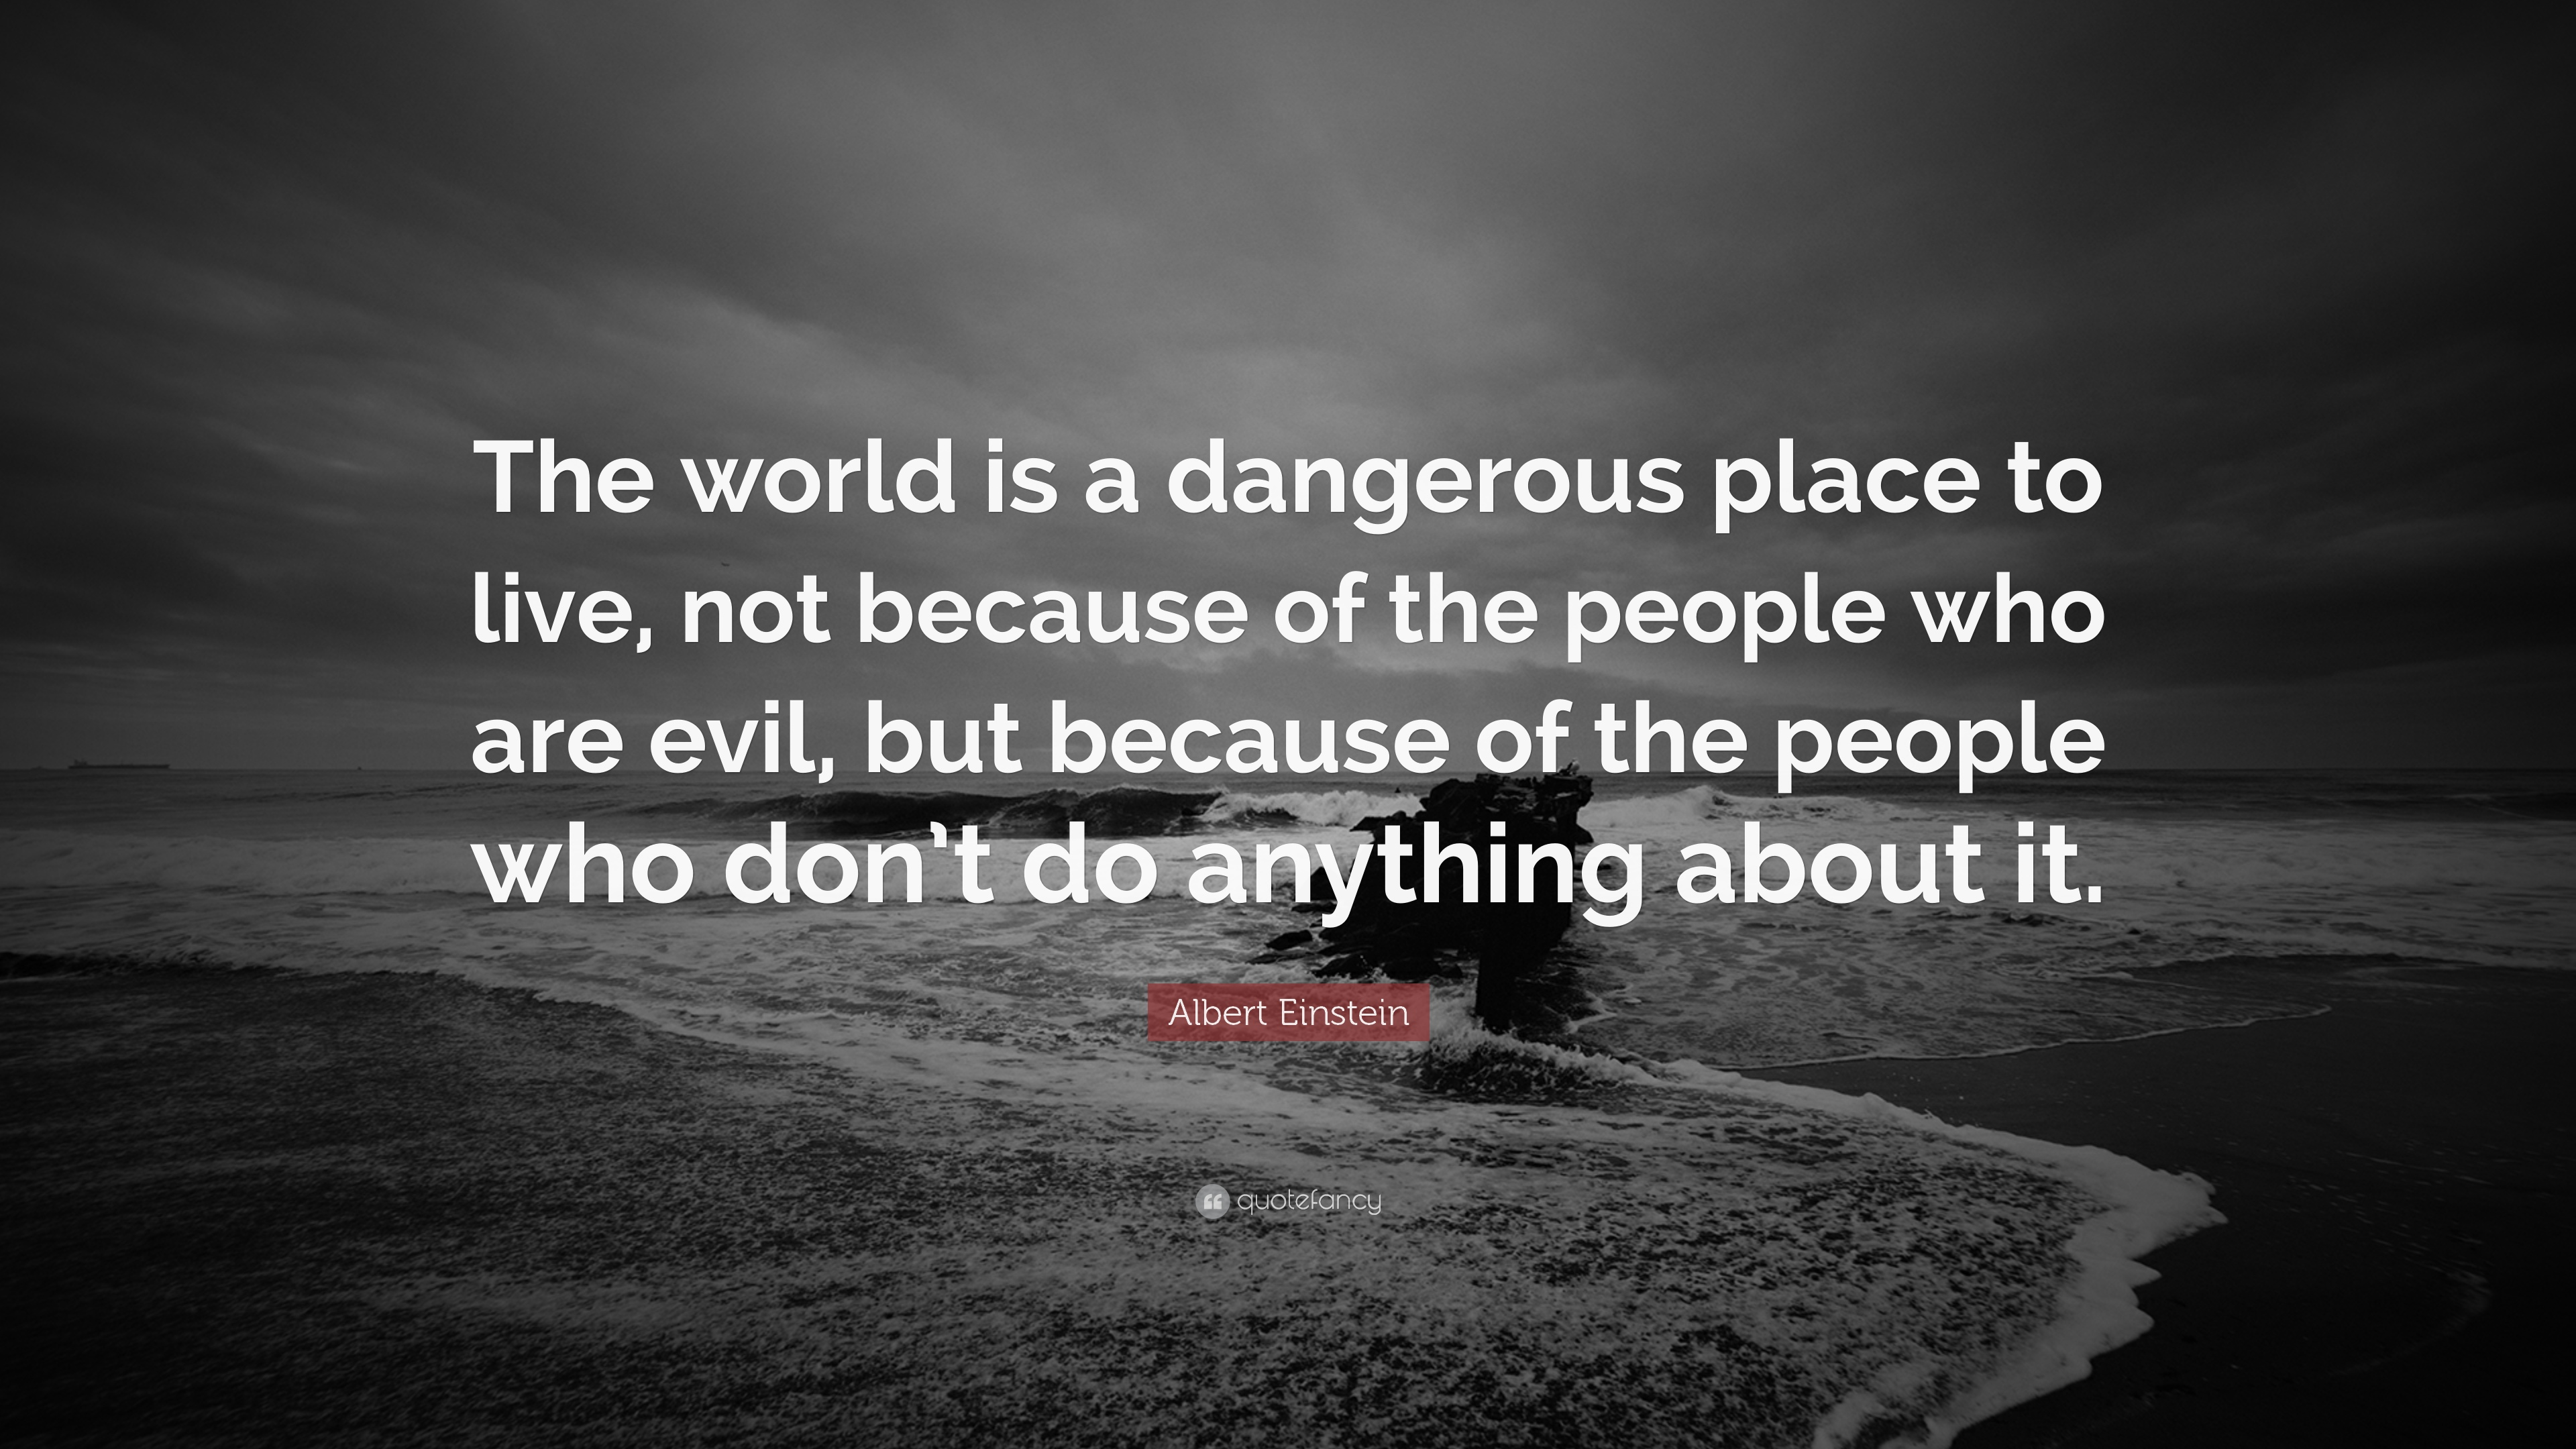 world is a dangerous place One of the most politically unstable places in the world, both britain and america advising citizens to vacate the country due to terrorism fears their capital city of sana'a, 7,500 feet about sea level, is surprisingly interesting to visit, even if it's also known as one of the most dangerous places to live, ever.